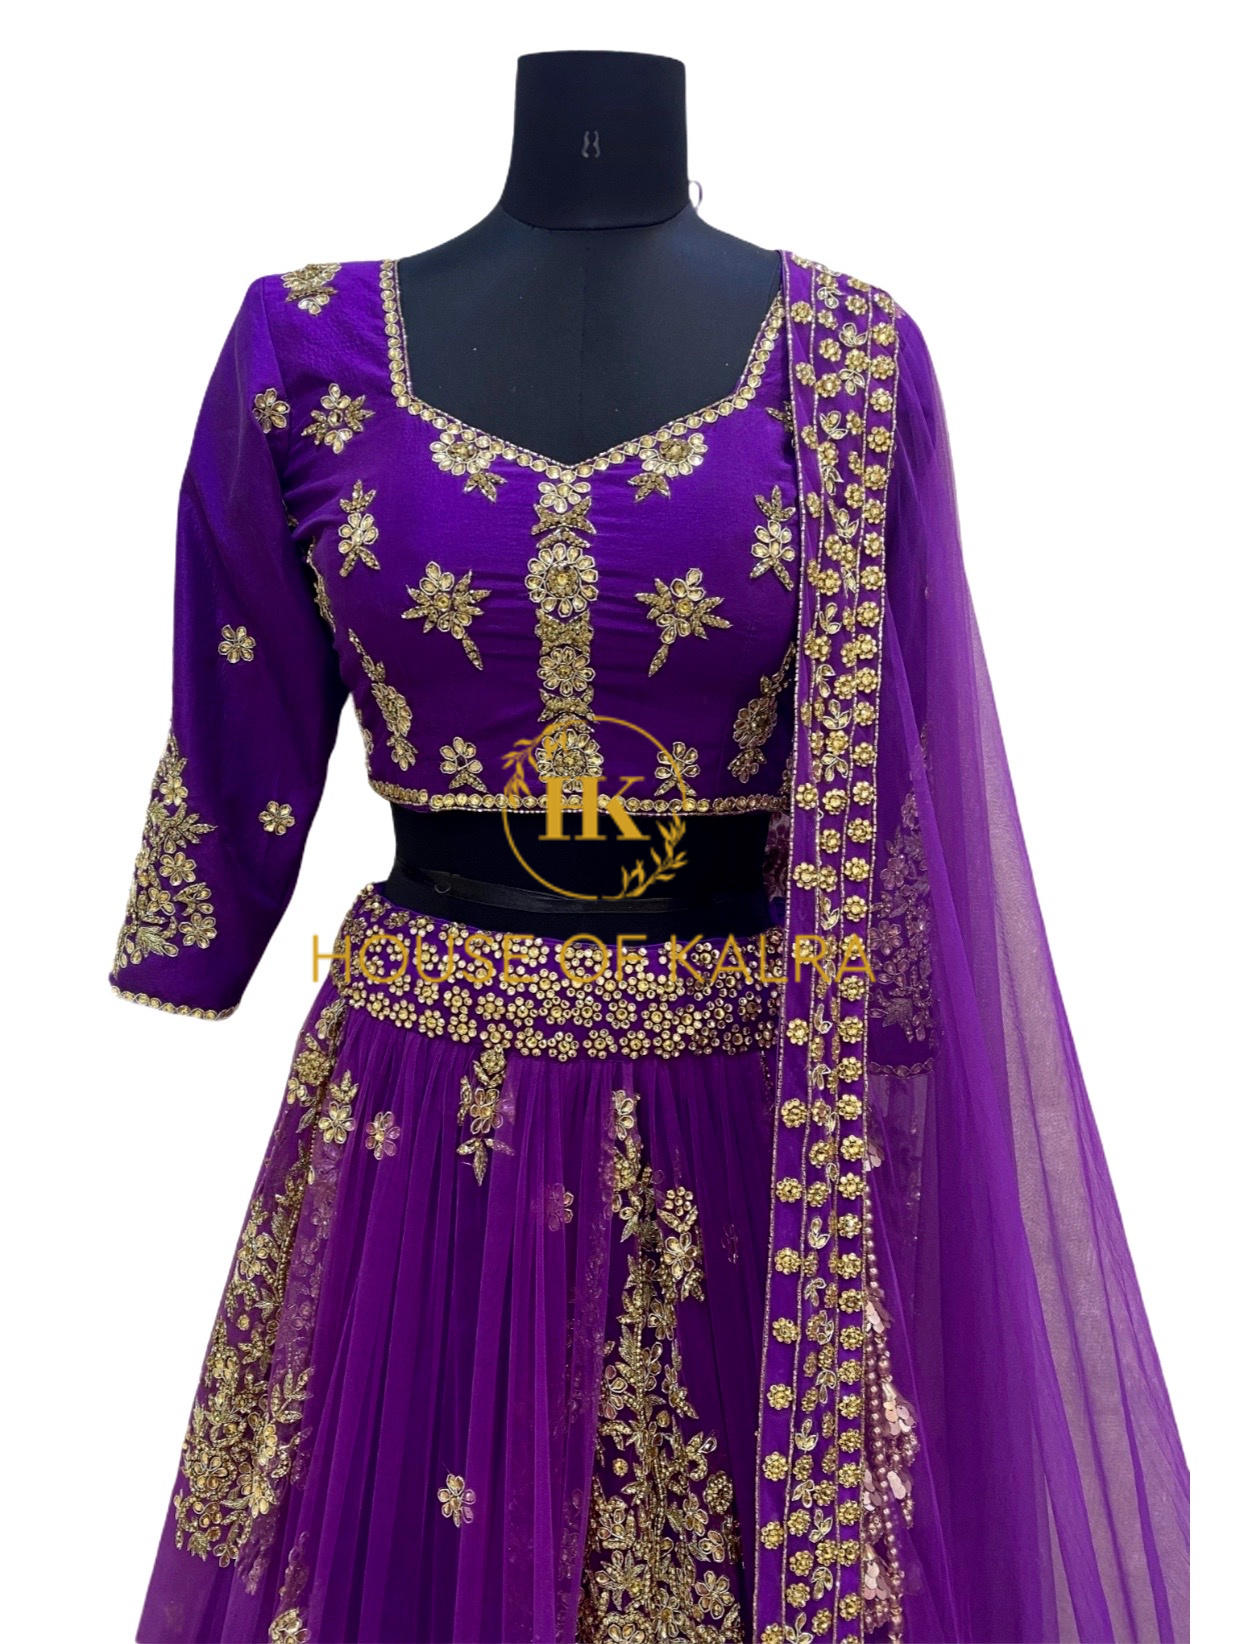 Best quality indian outfit lehnga